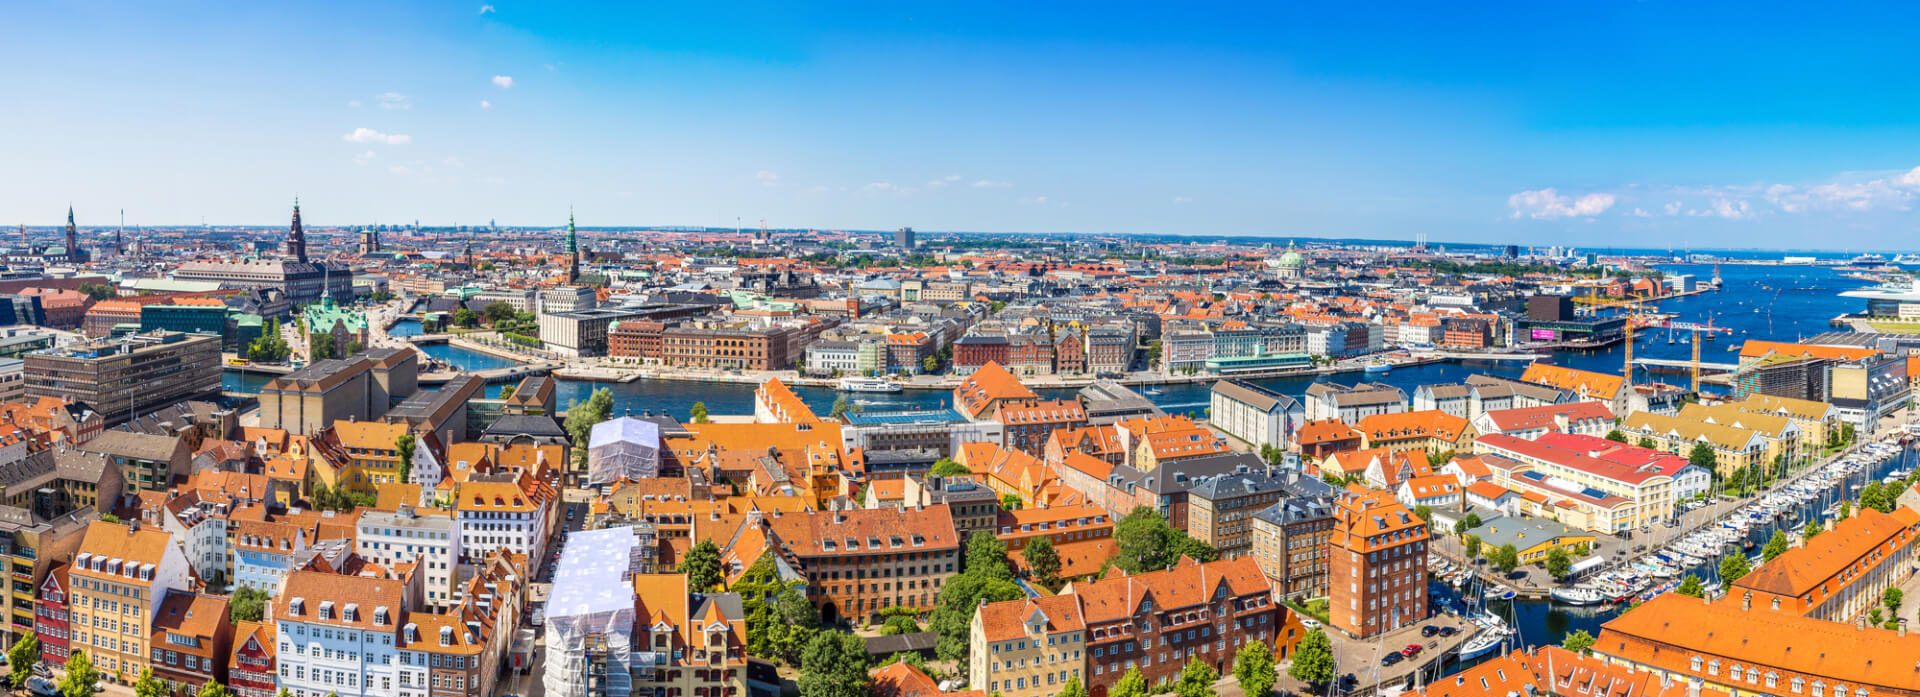 From the prison toilet to the most comfortable city — how did the capital of Denmark change